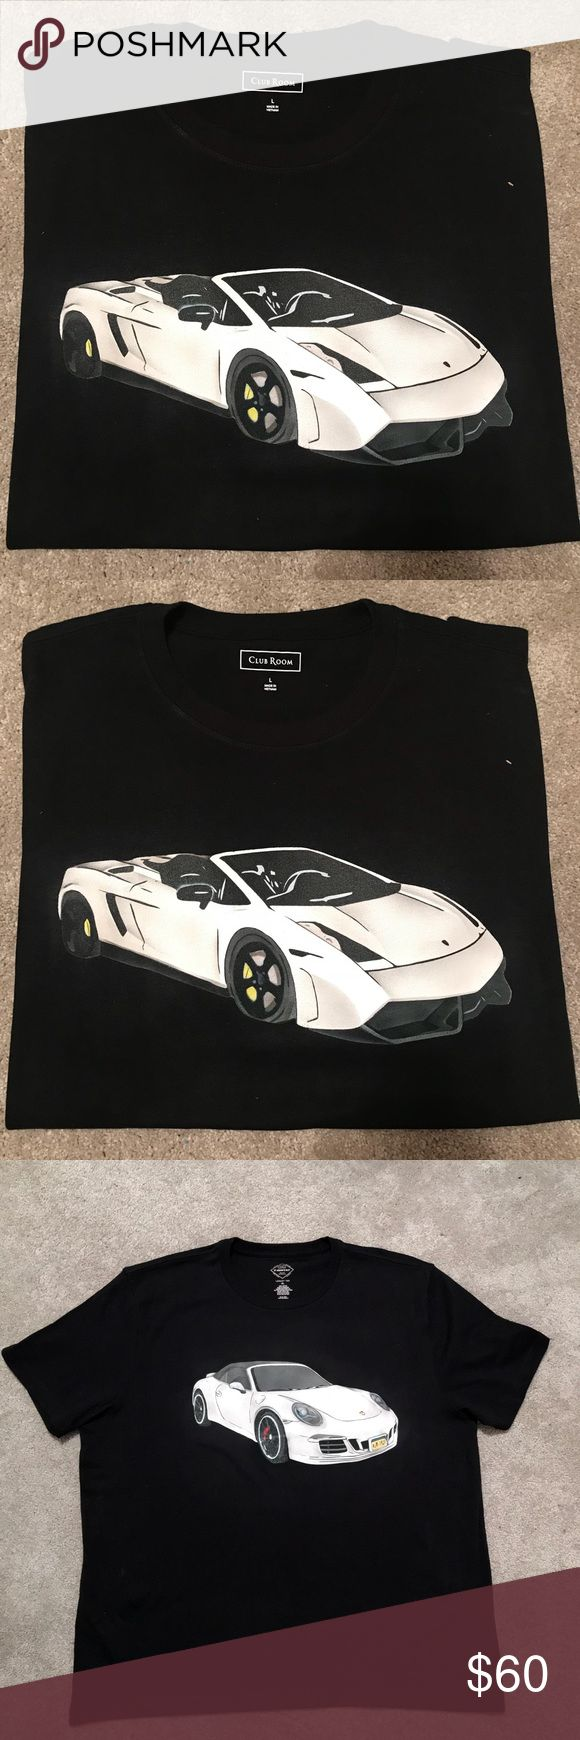 Custom Car T Shirts These shirts were made custom for clients using an airbrush gun. They look like screen print!  I have these and others for sale. You can also request your own design. Tops Tees - Short Sleeve